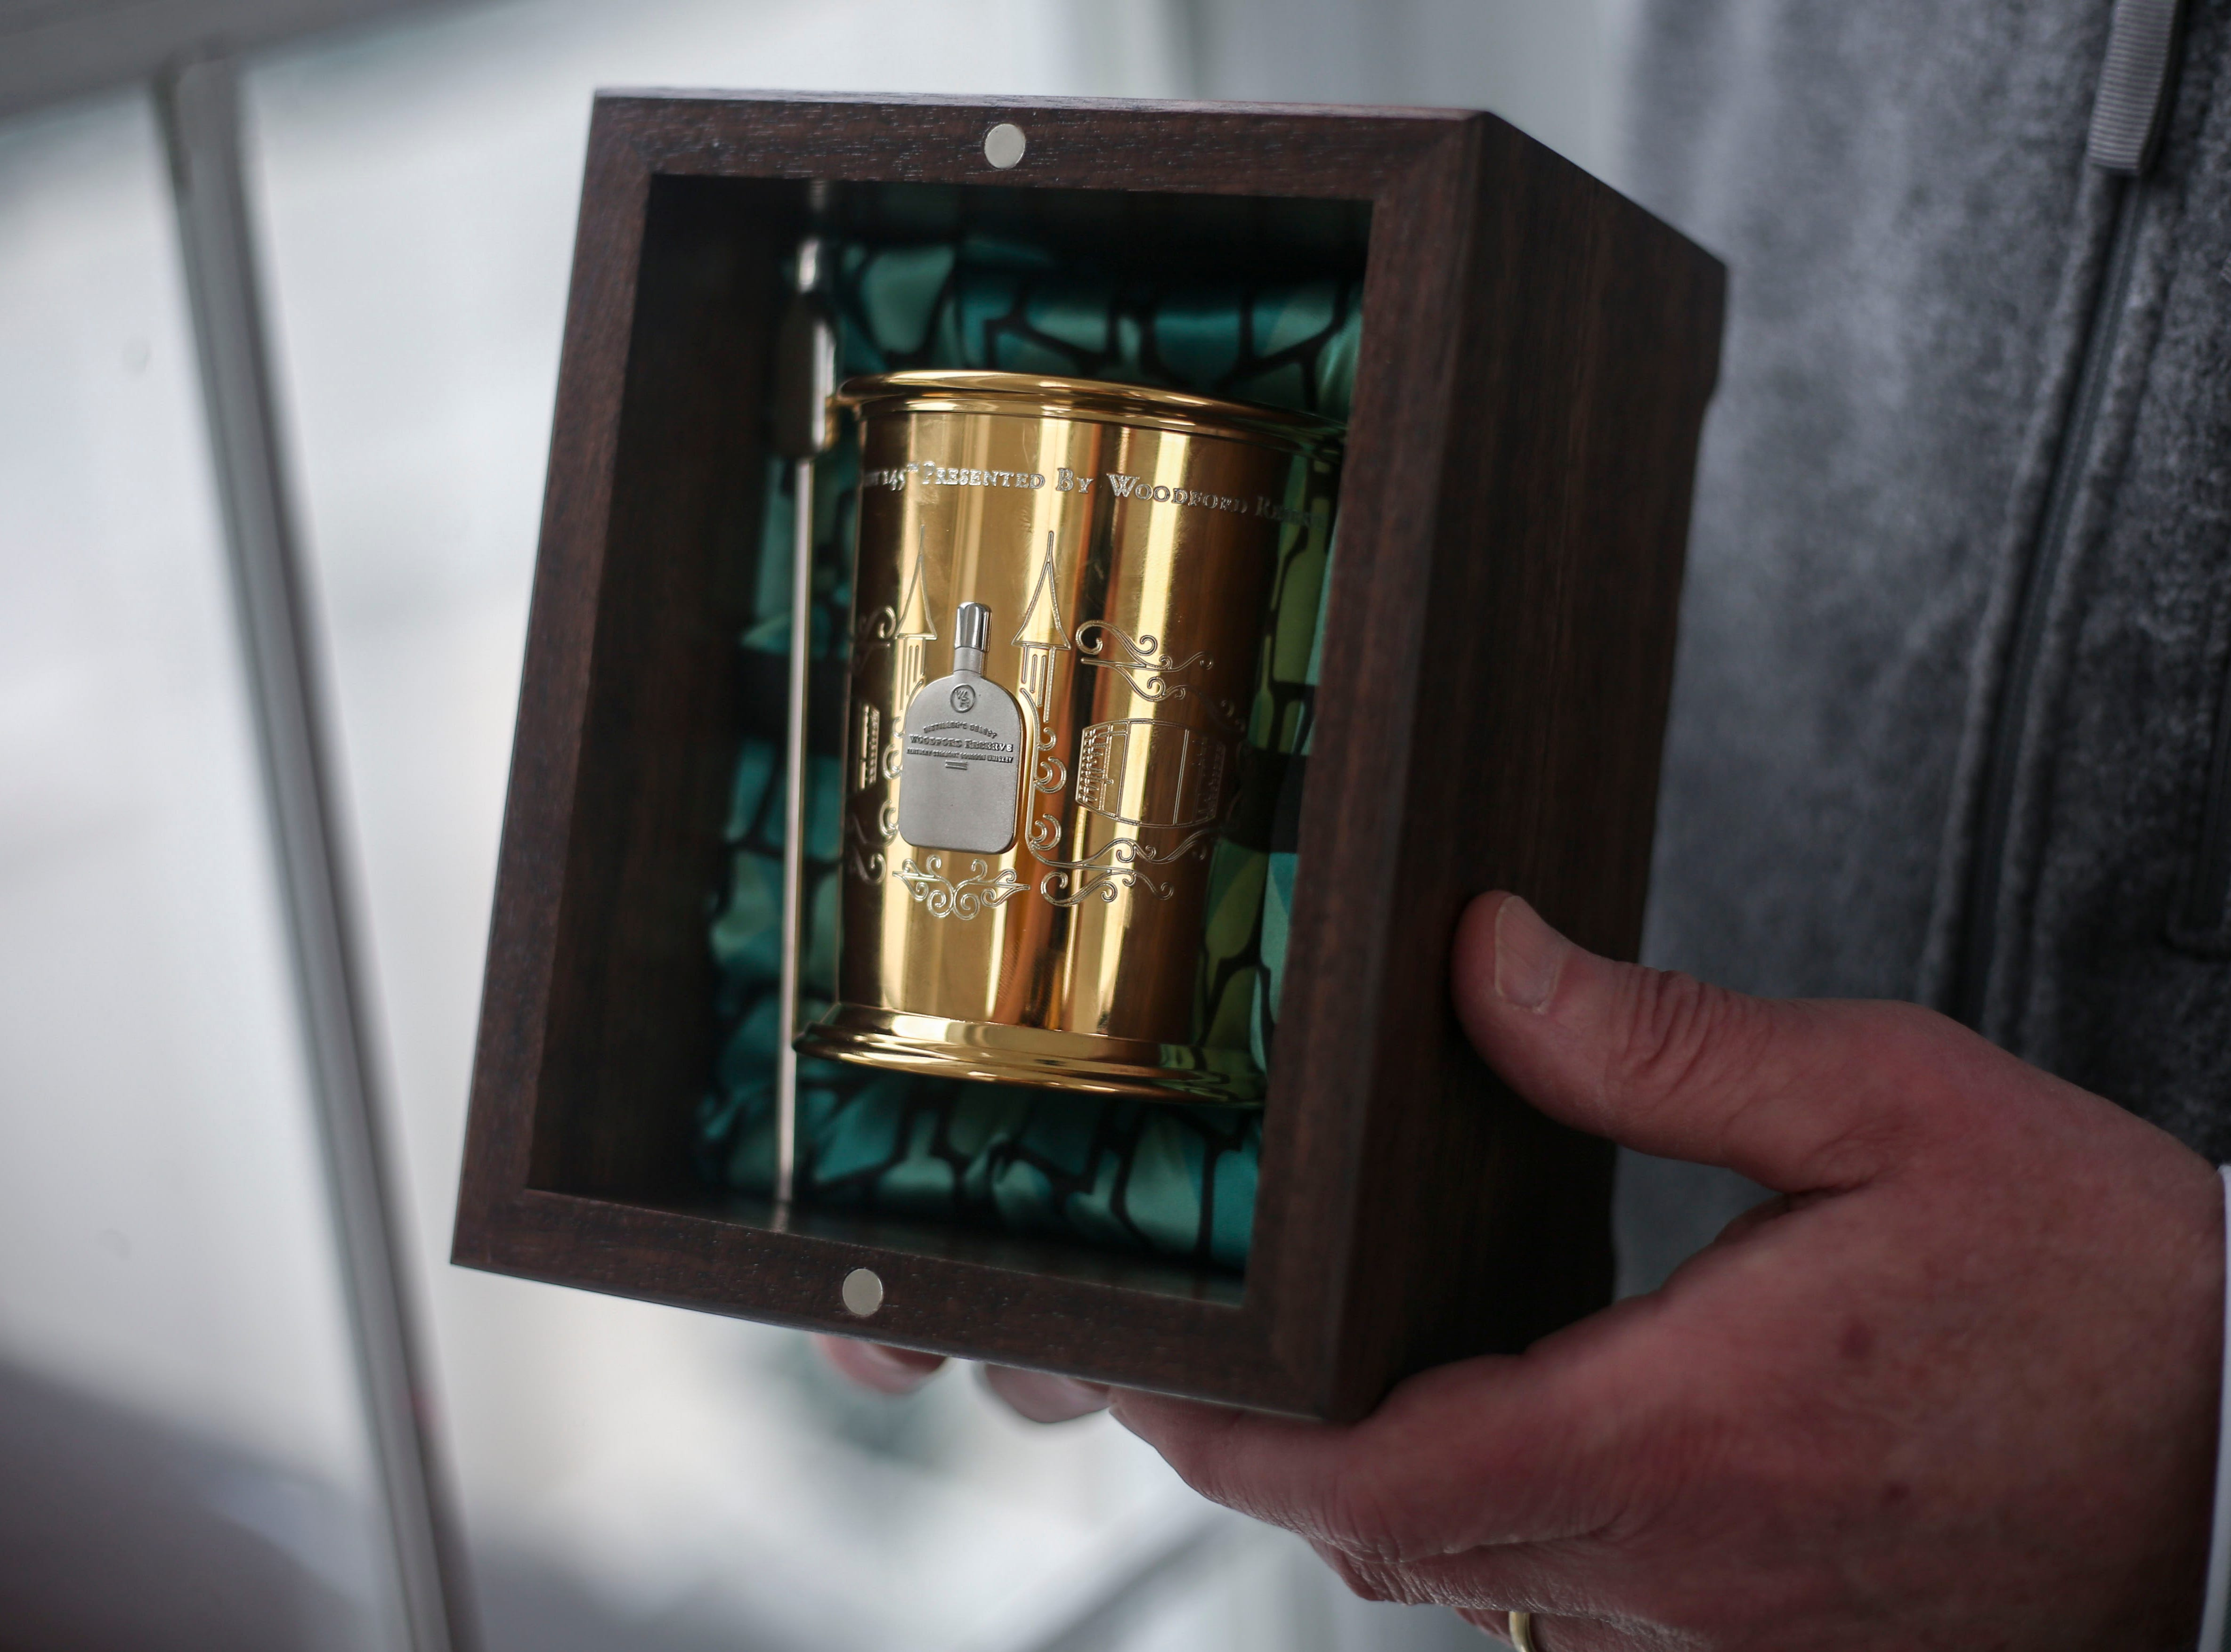 Chris Morris, master distiller at Woodford Reserve, holds this year's 145th Kentucky Derby Woodford Reserve $2,500 mint julep cup, made from 14k gold by From the Vault in St. Matthews, in a box lined with silk from Bourbon Cousins, at Churchill Downs in Louisville, Ky. on Thursday, March 5, 2019.